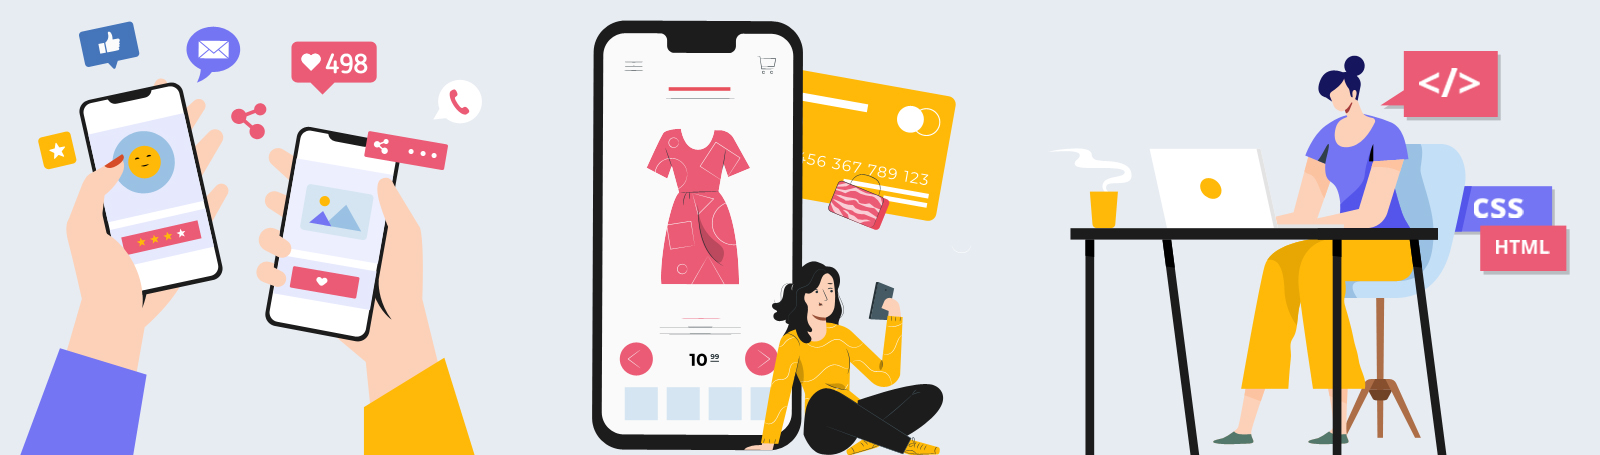 Next Generation of eCommerce: How the Industry will Take Shape in the Future?